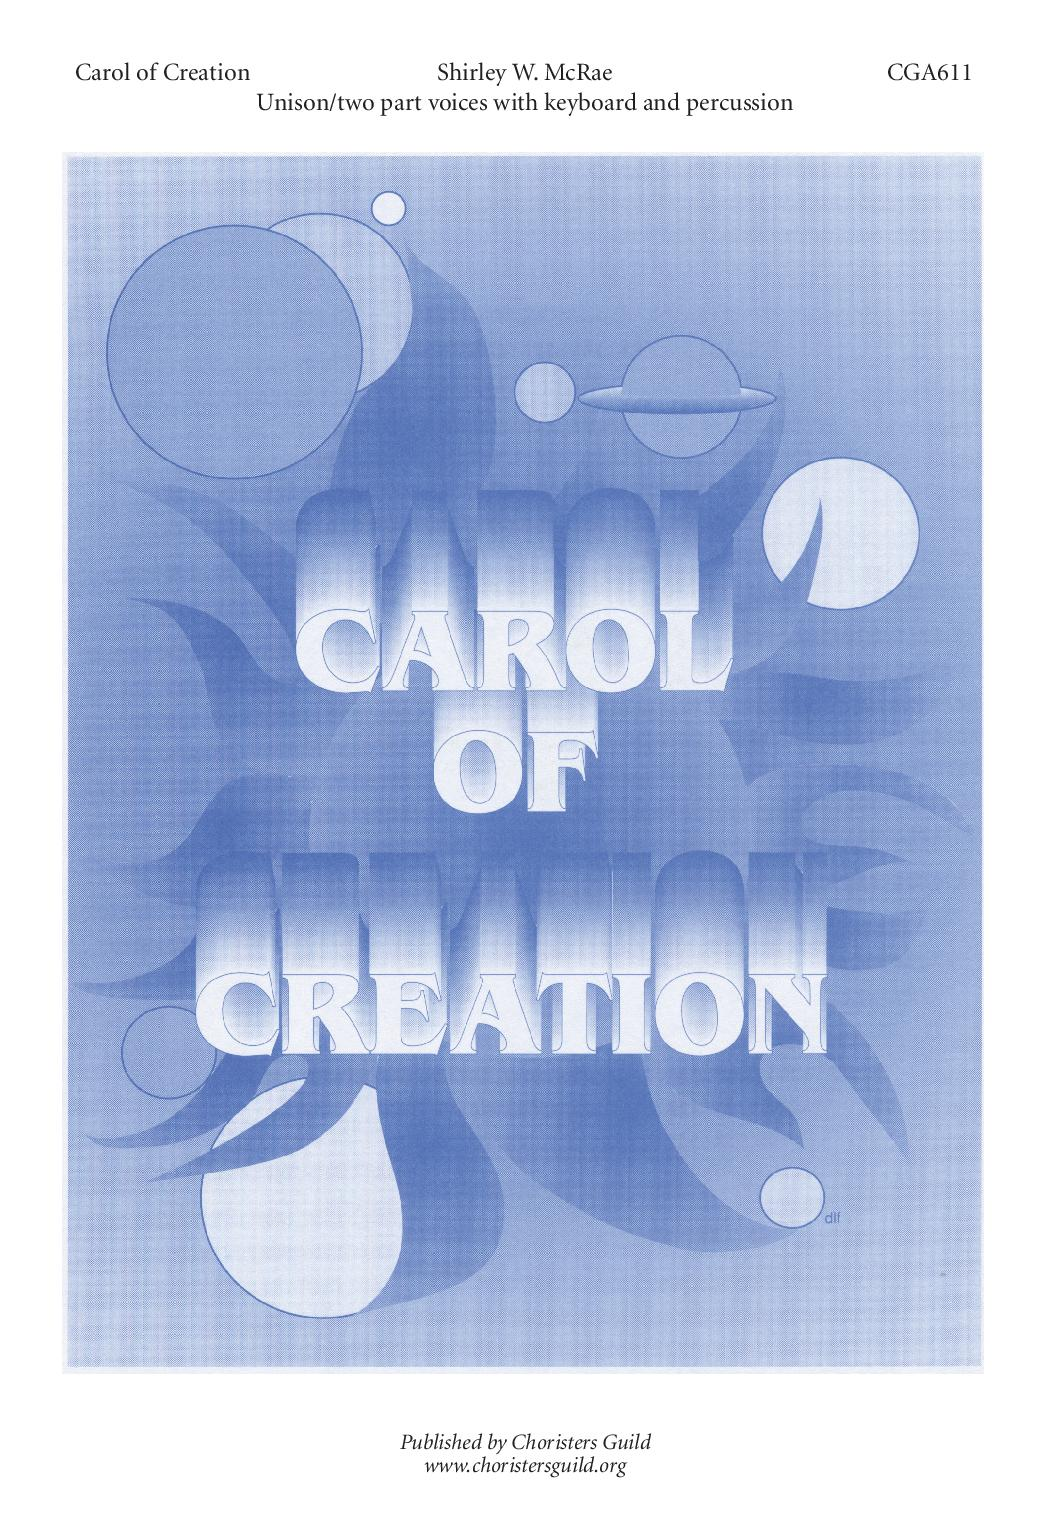 Carol of Creation